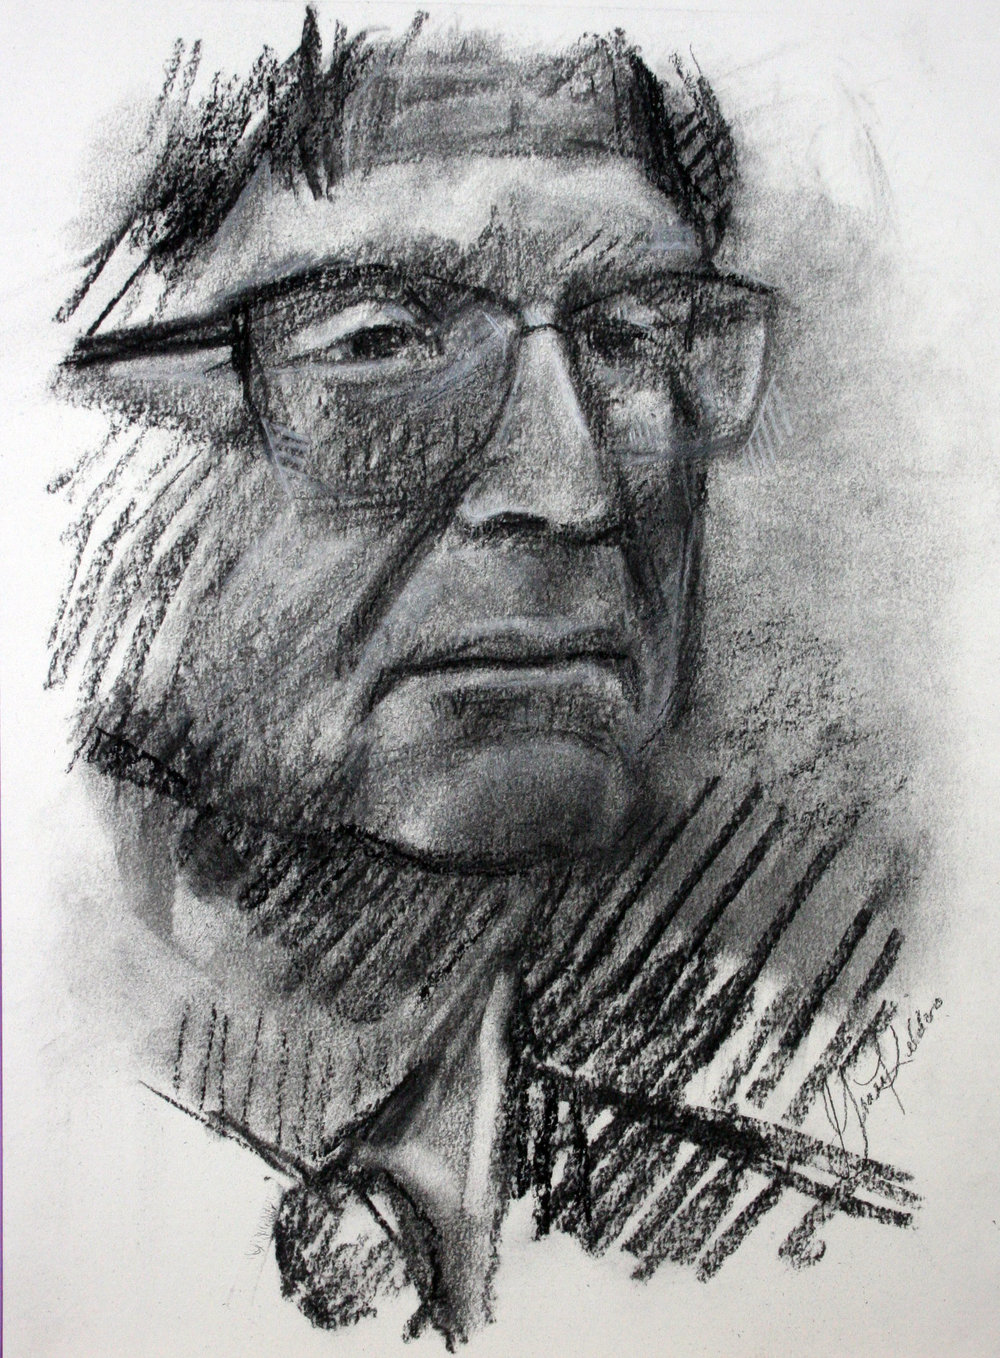 Grace Kildoo McConnell did this conte drawing.